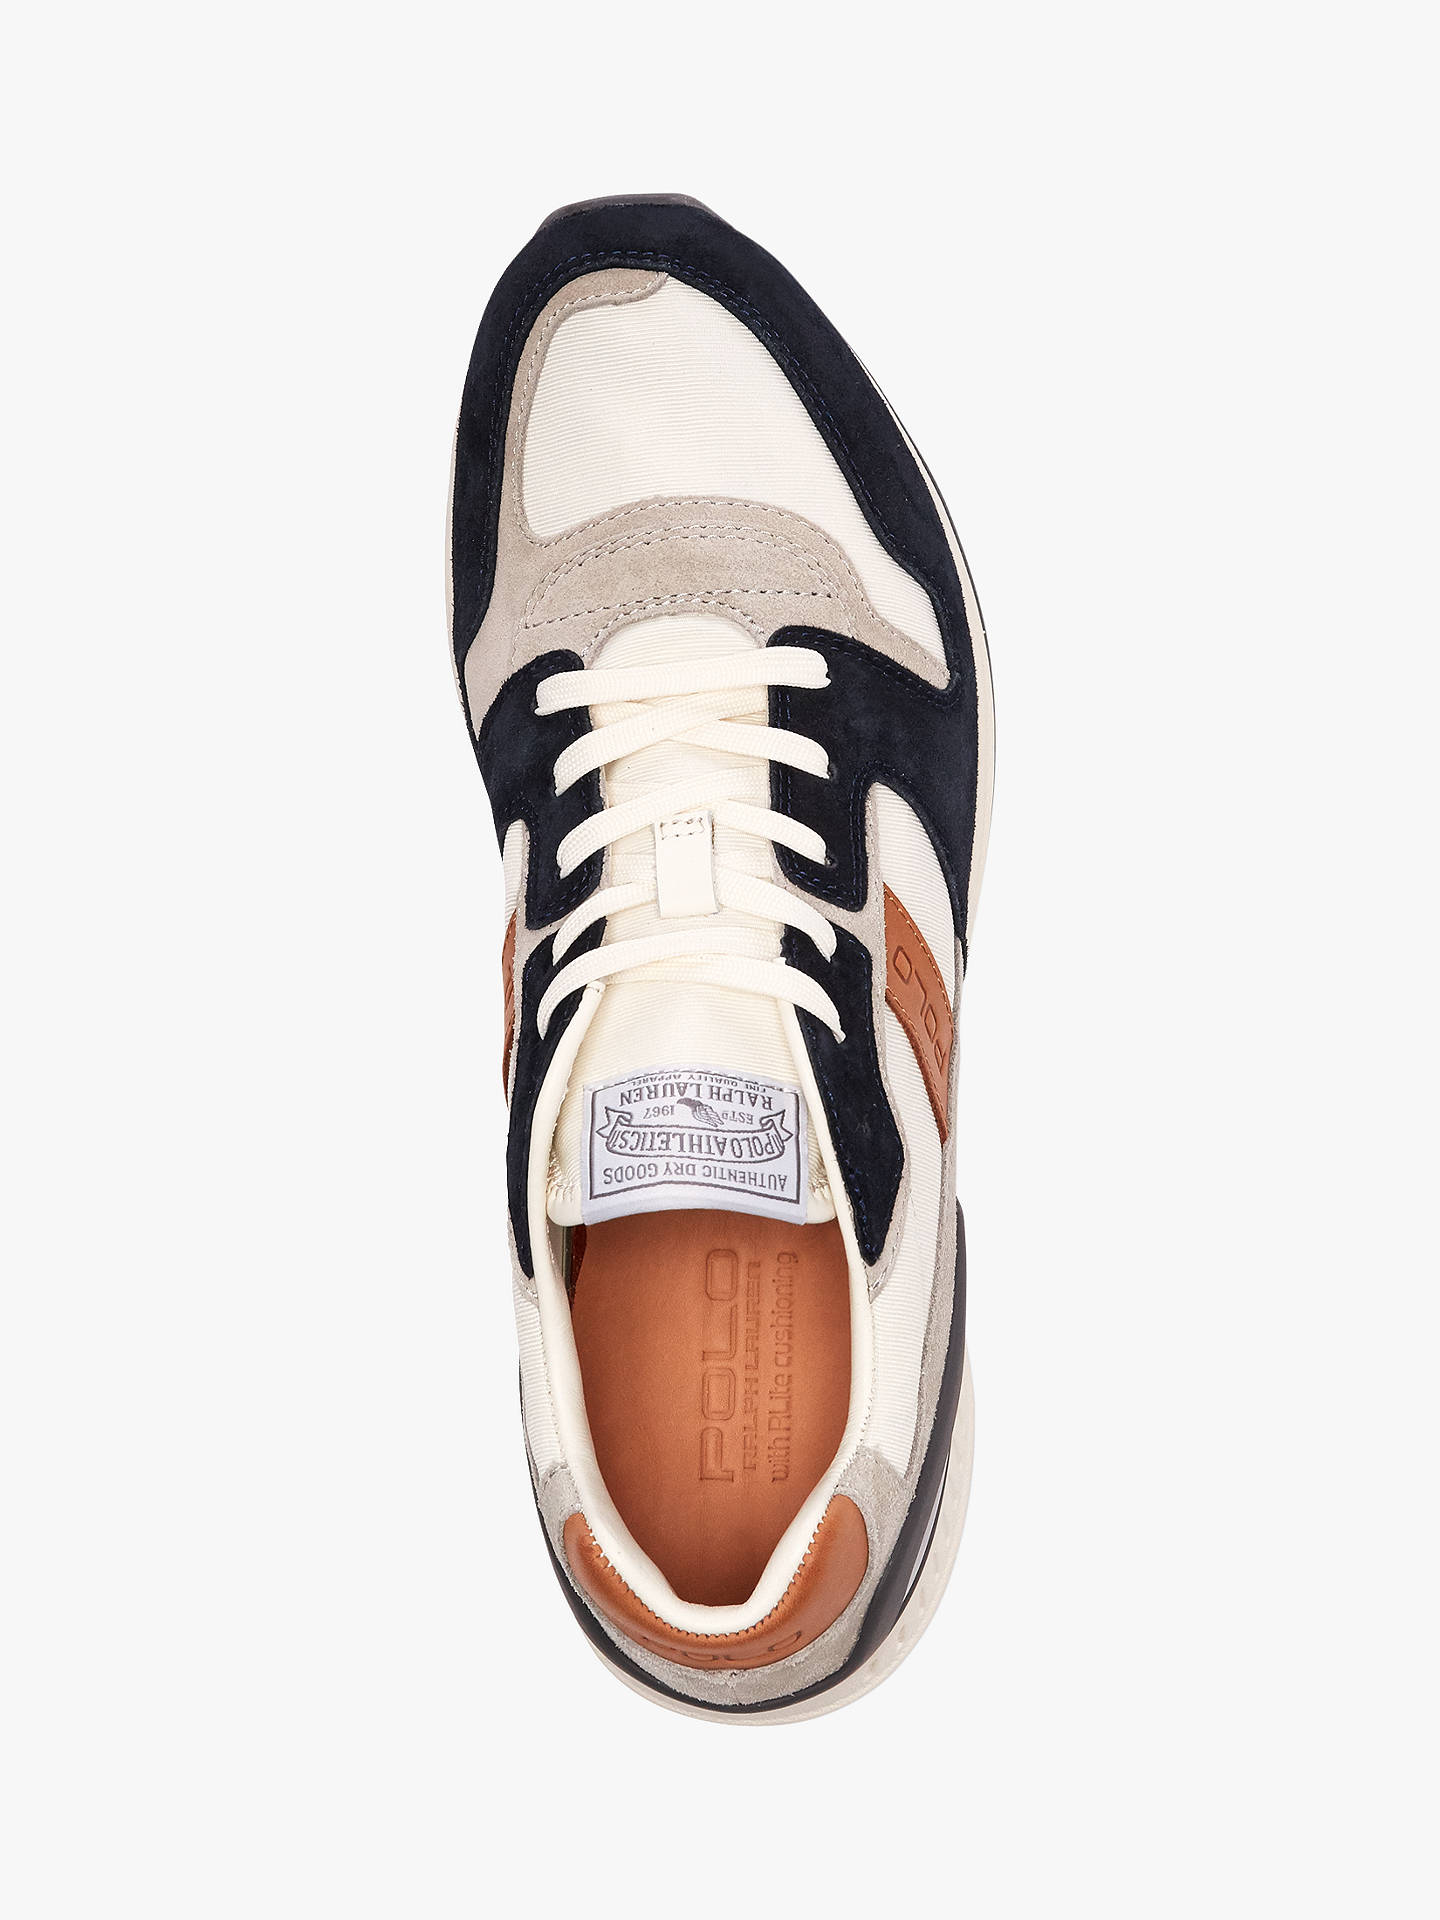 BuyPolo Ralph Lauren Train Chunky Trainers, White/Newport Navy, 9 Online at johnlewis.com